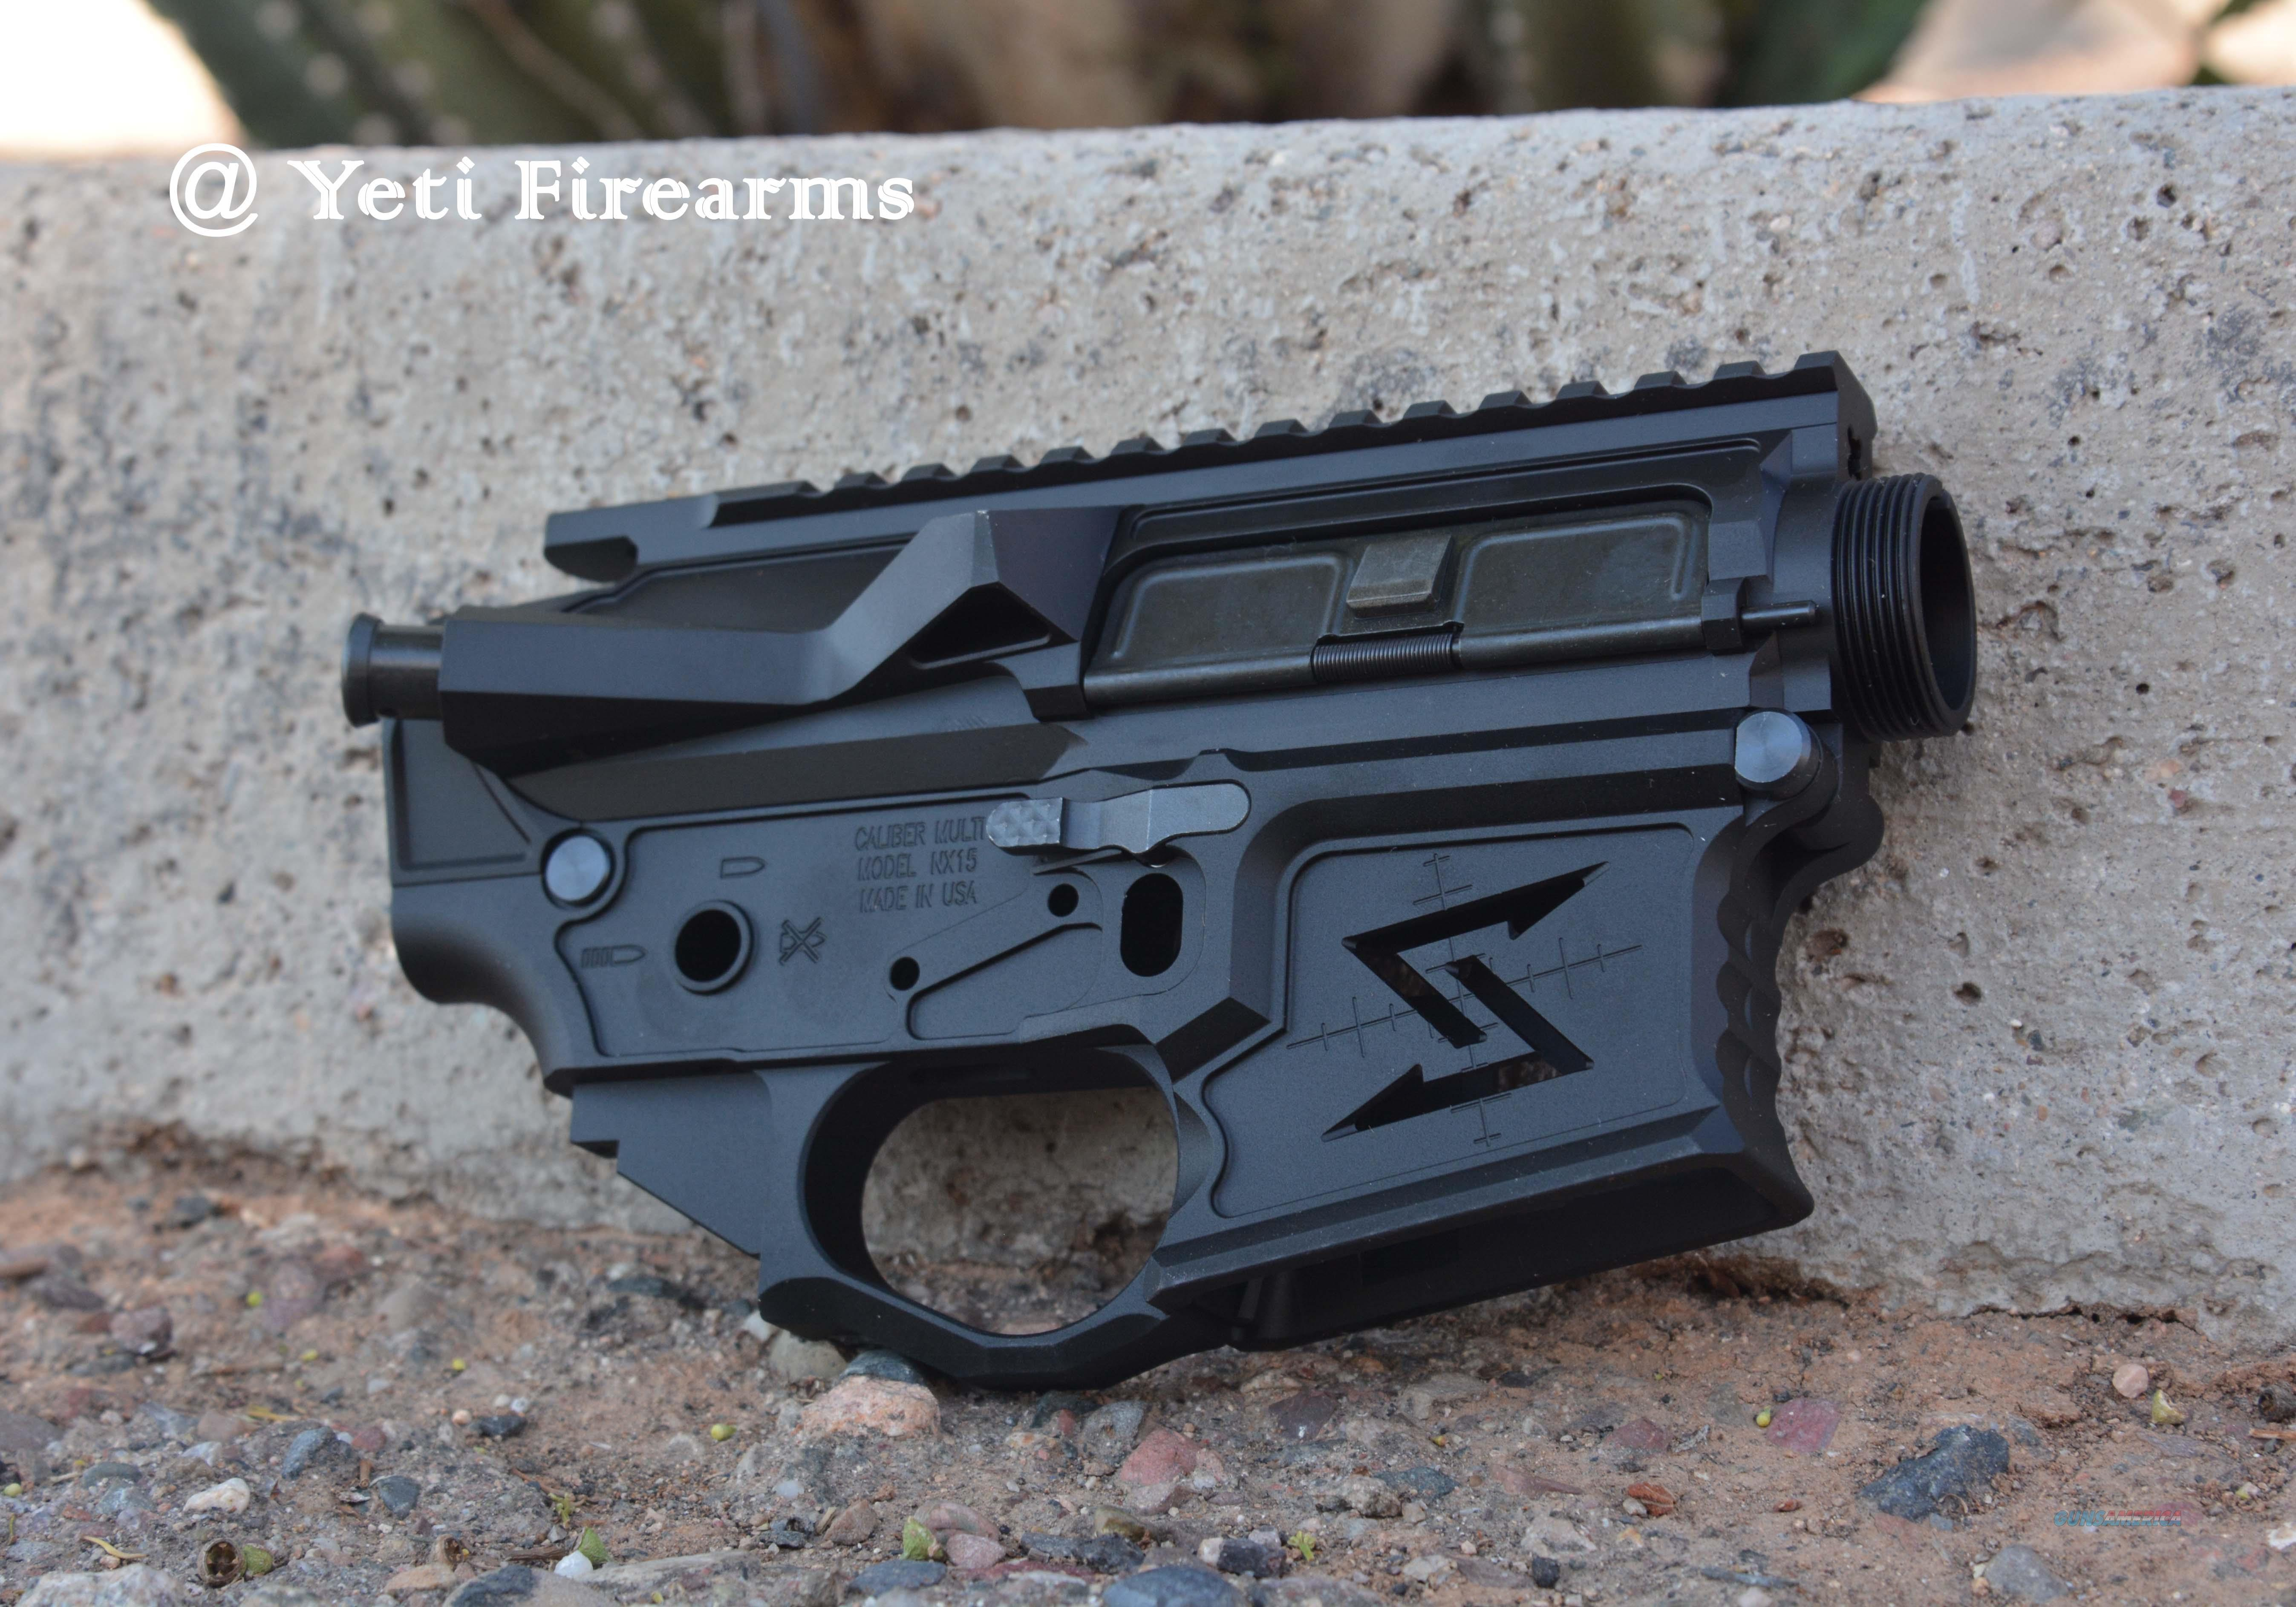 Seekins NX15 Skeletonized AR-15 Receiver Set 5.56  Guns > Rifles > AR-15 Rifles - Small Manufacturers > Lower Only